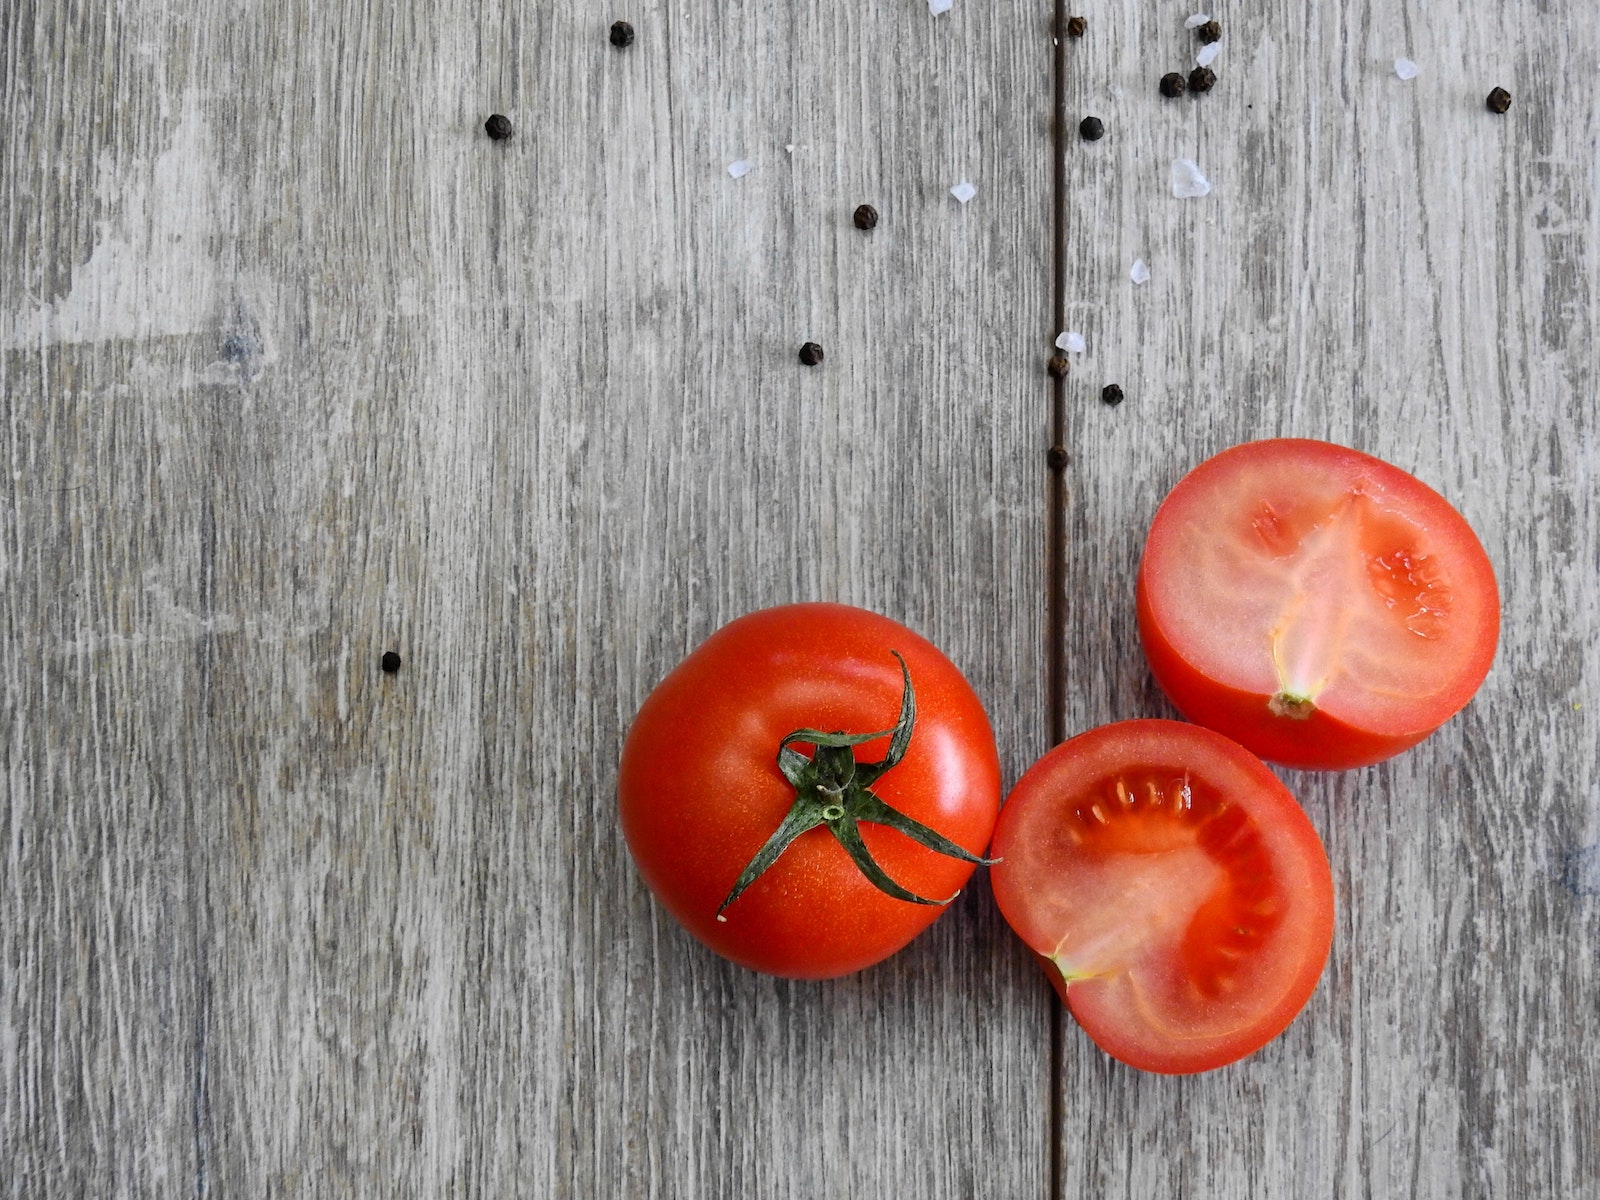 Two tomatoes on a wood background